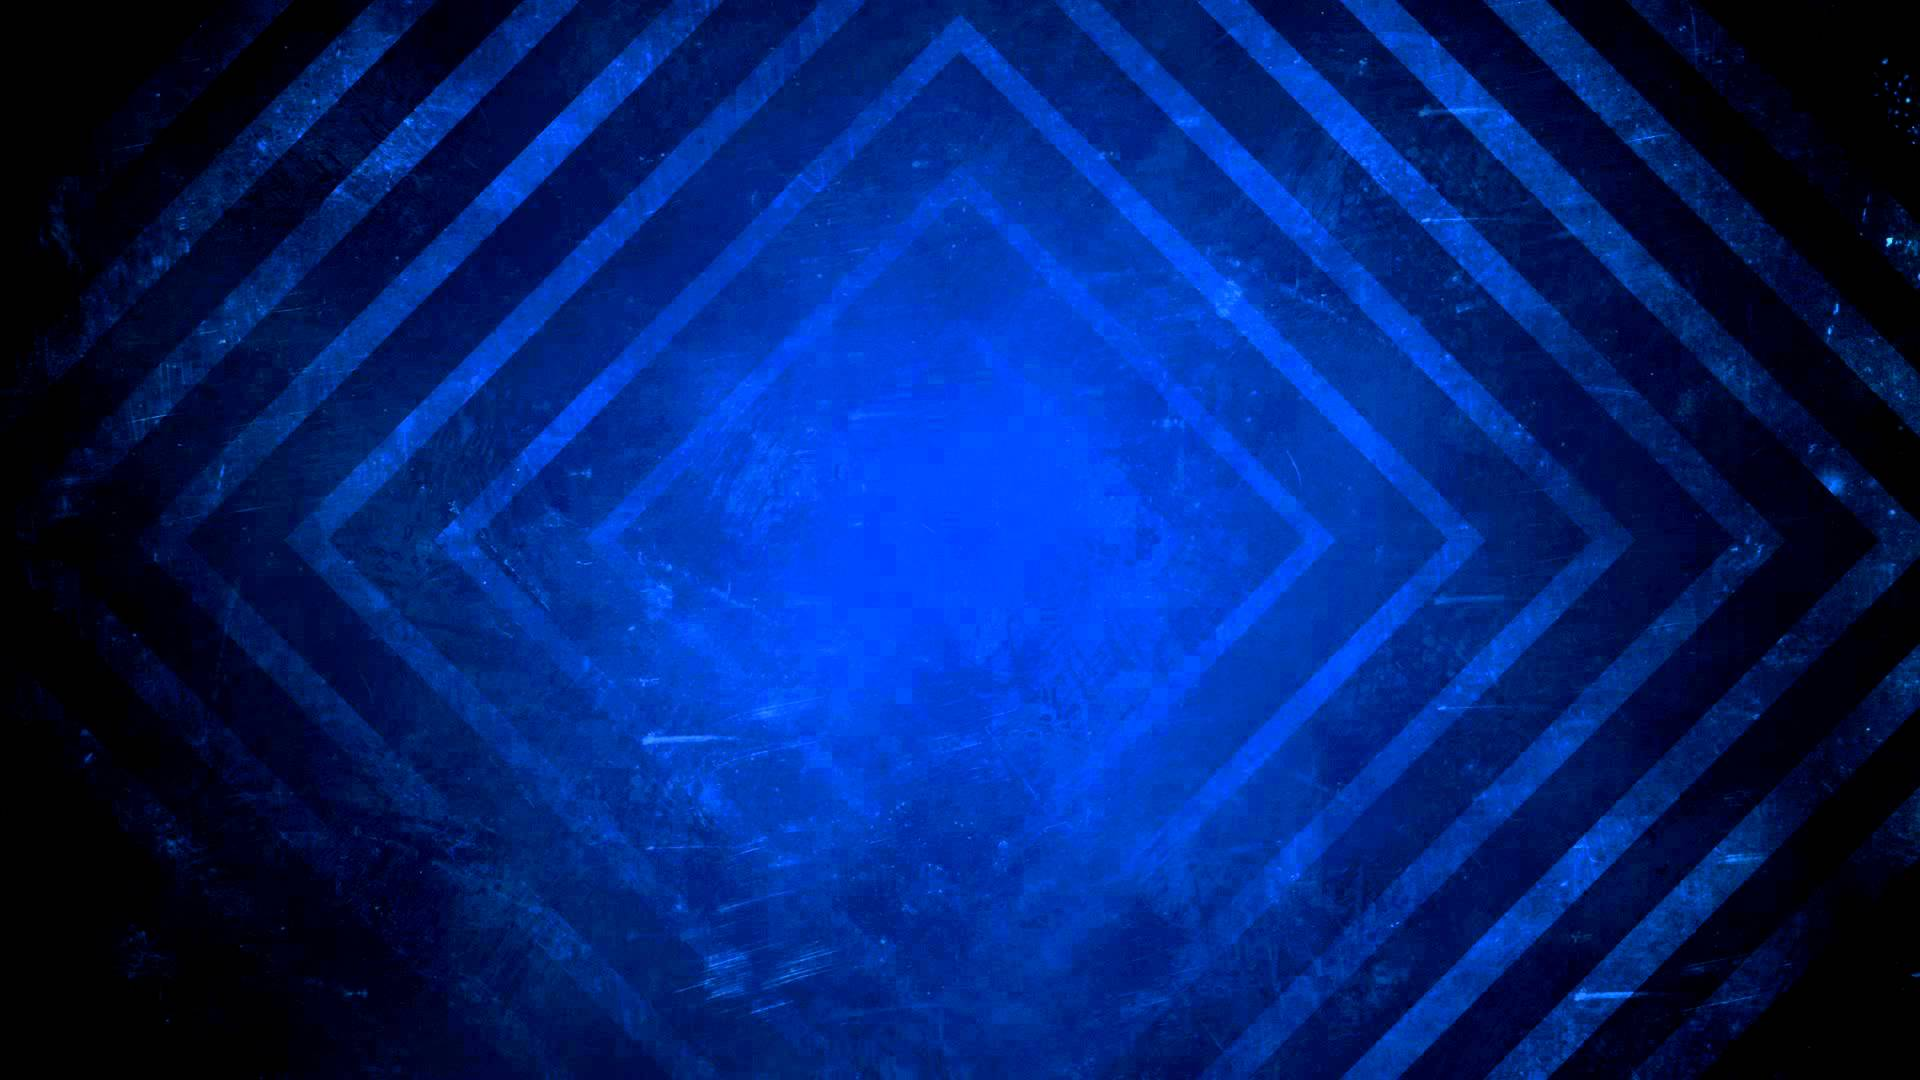 Blue Squares   HD Background Loop 1920x1080